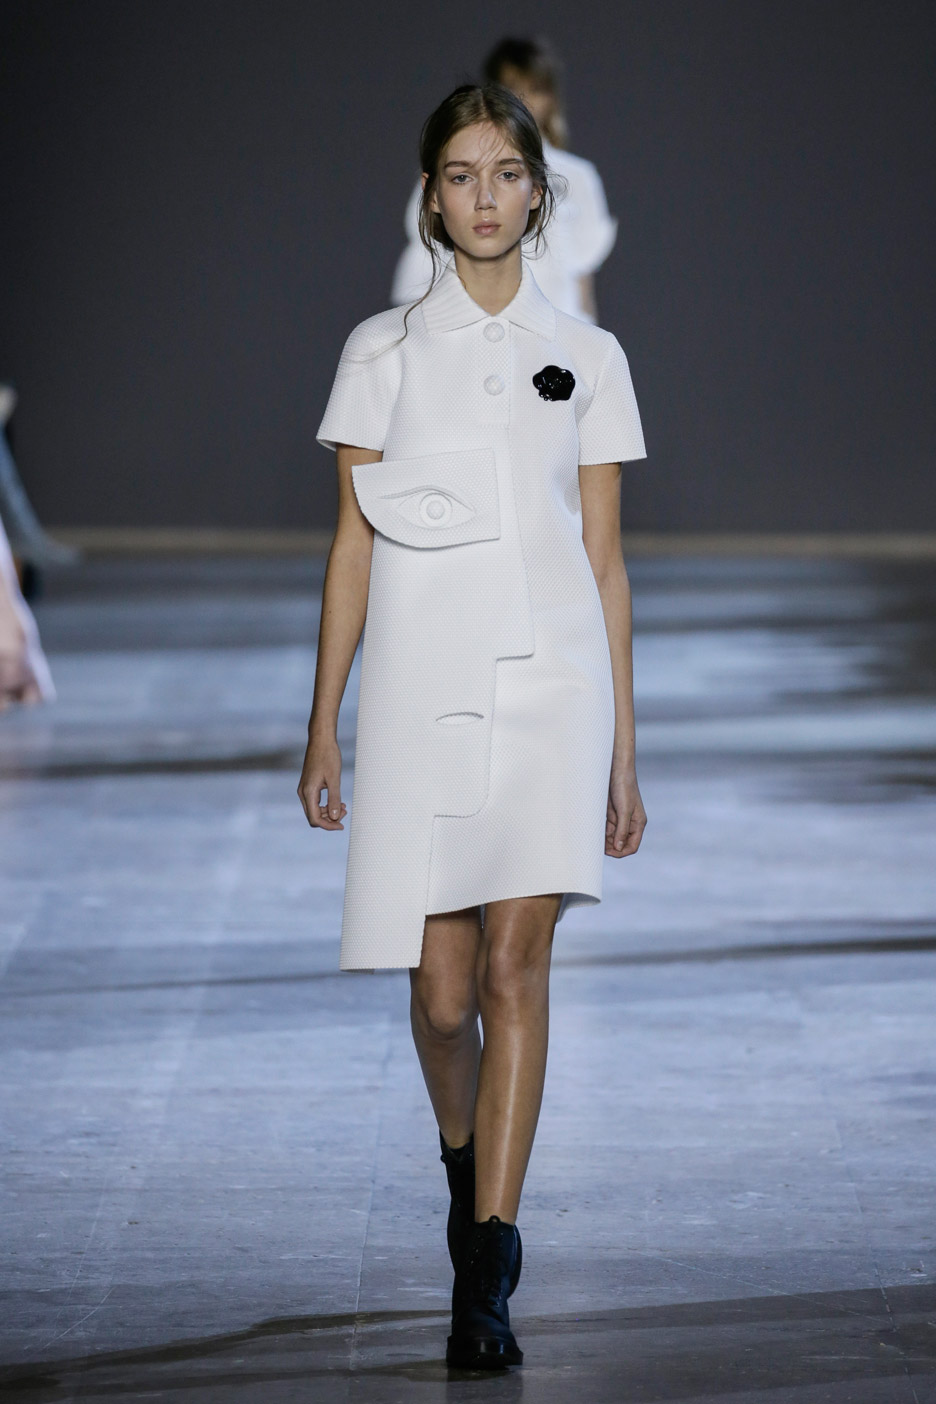 viktor-rolf-haute-couture-collection-spring-summer-2016-performance-sculptures_dezeen_936_0